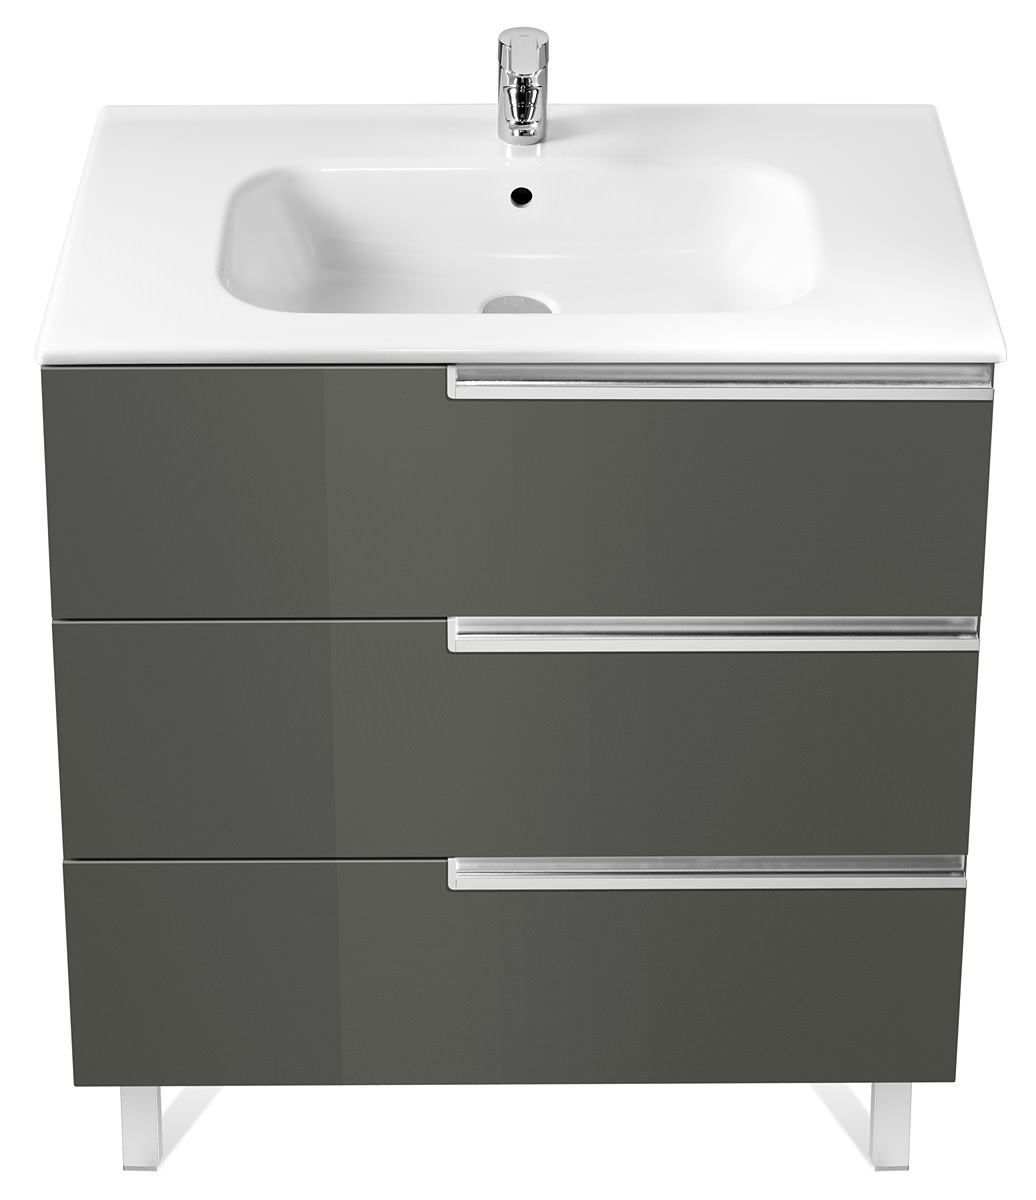 Roca victoria n unik basin and unit with 3 drawers 1000mm for Roca victoria